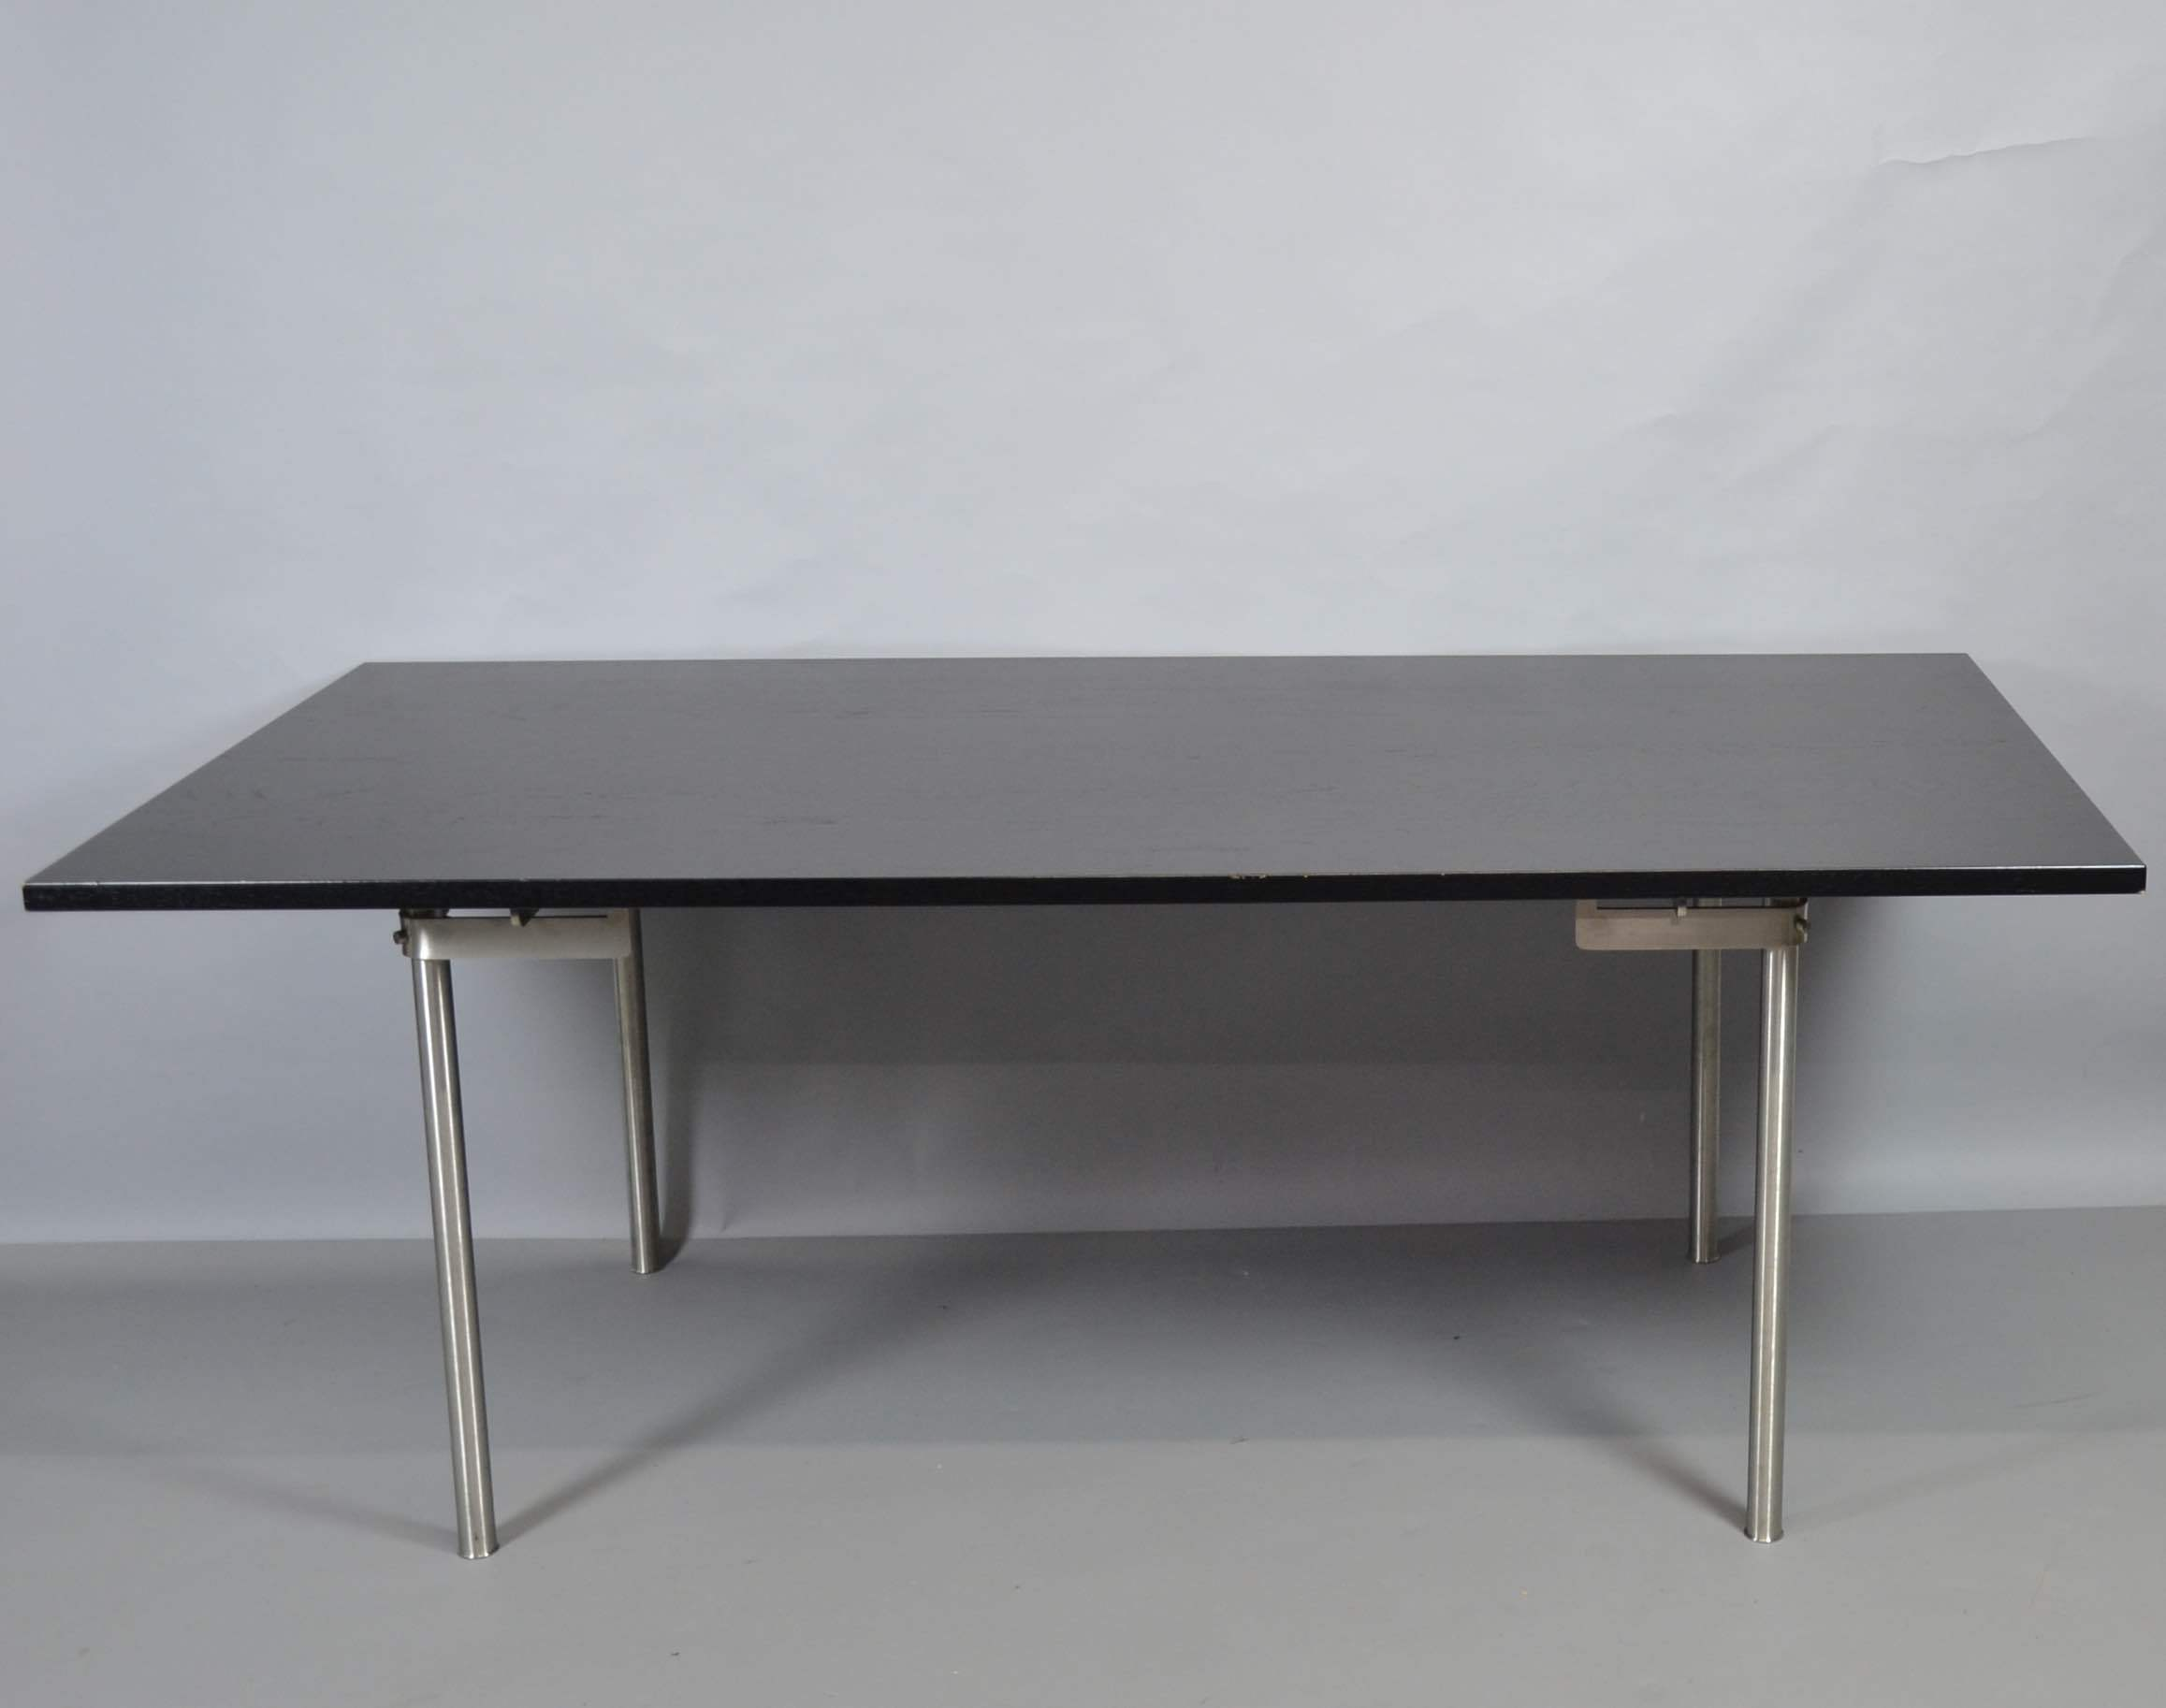 Esstisch Eiche Dänemark Hans J Wegner Esstisch Ch318 Furniture Tables Auctionet